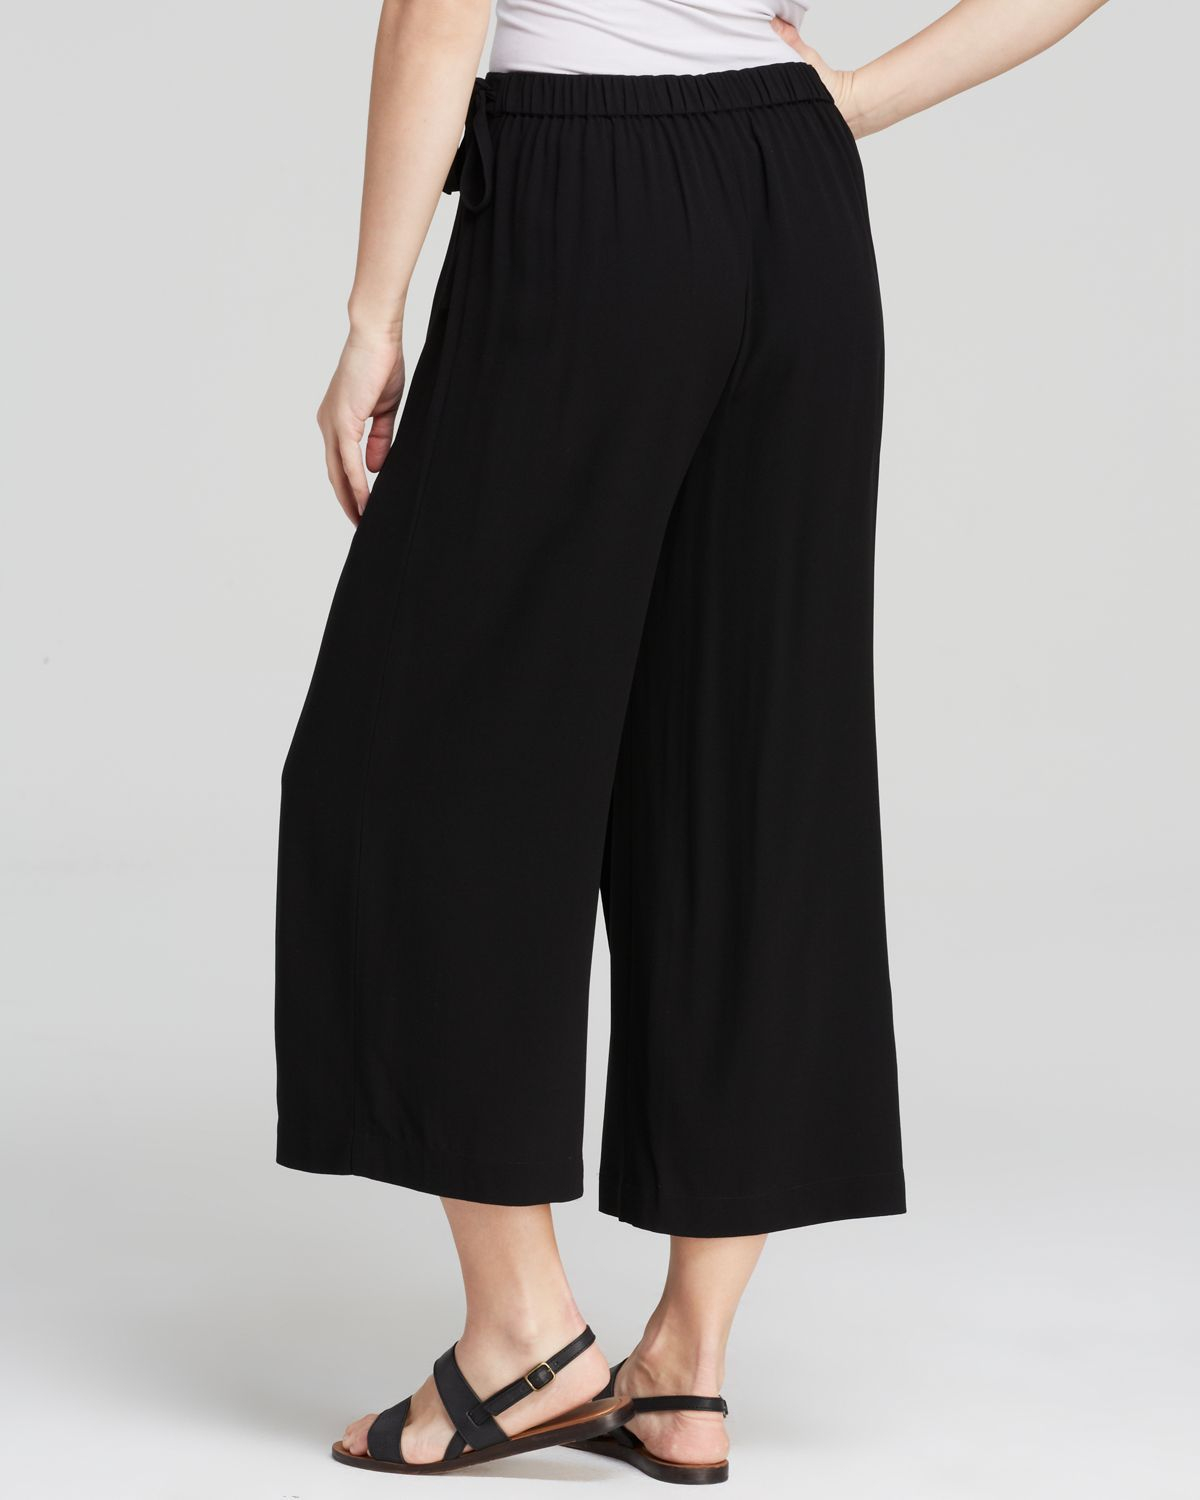 Discover Urban Outfitters' selection of women's trousers. Browse through the selection of pencil and skater skirts, wide-leg trousers and Palazzo pants.